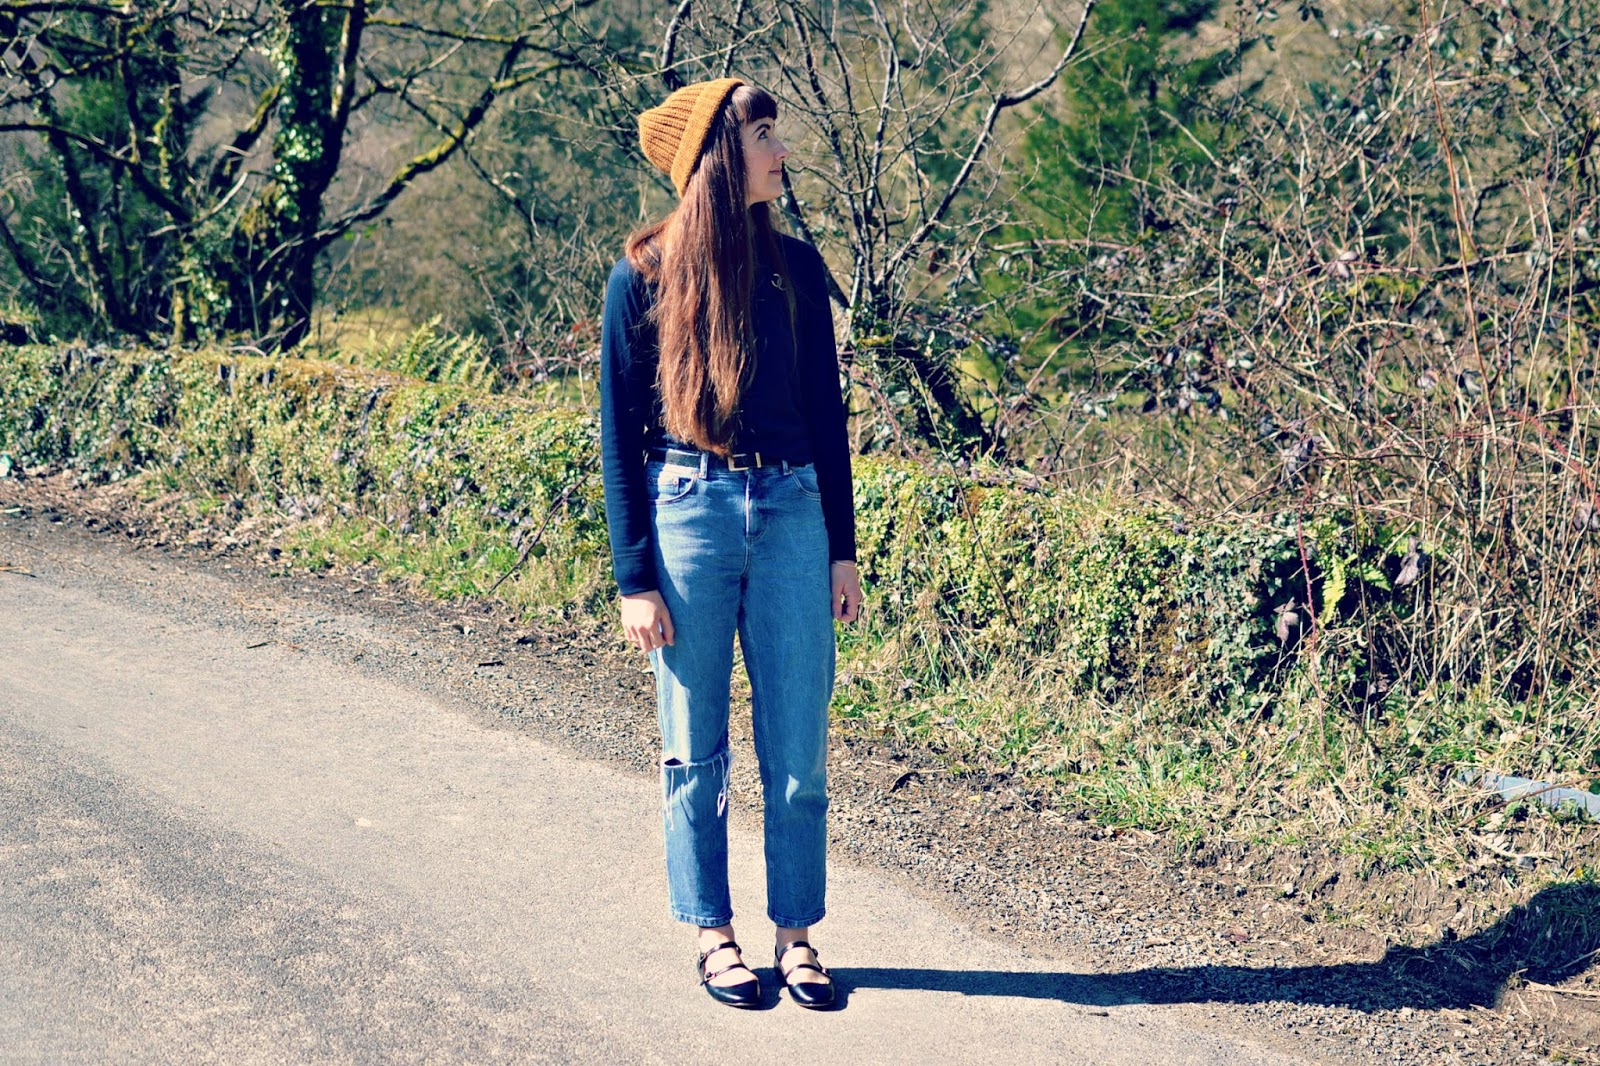 ASOS jeans, topshop boutique, Topshop ballet shoes, Monki hat